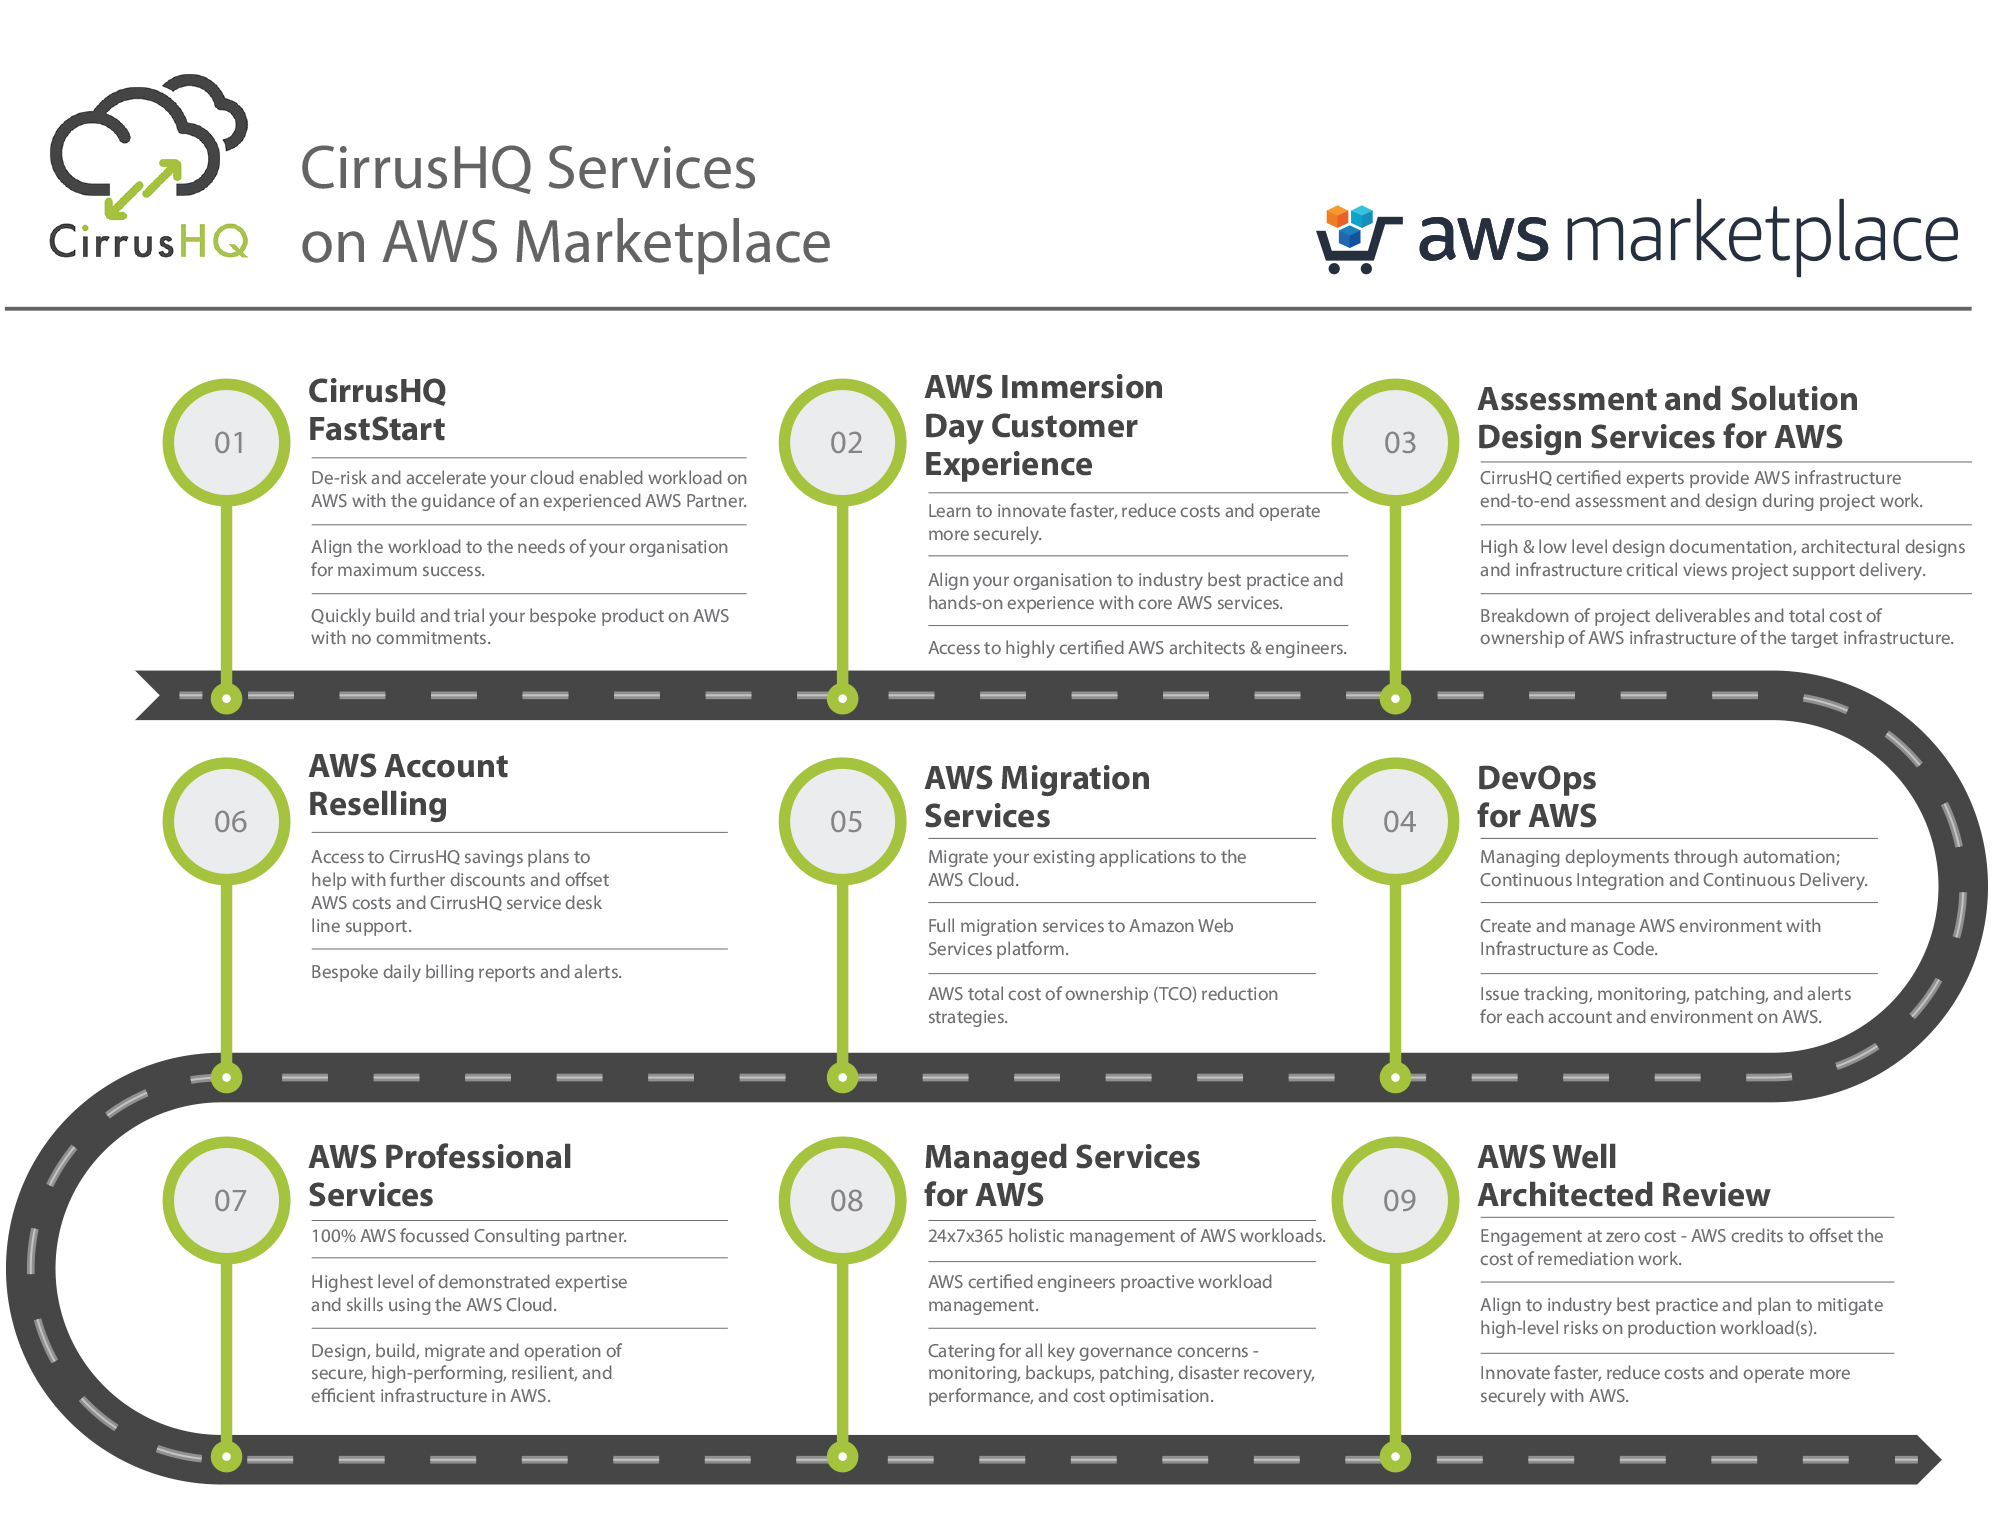 CIRRUSHQ AWS MARKET PLACE SERVICES AND PRODUCTS